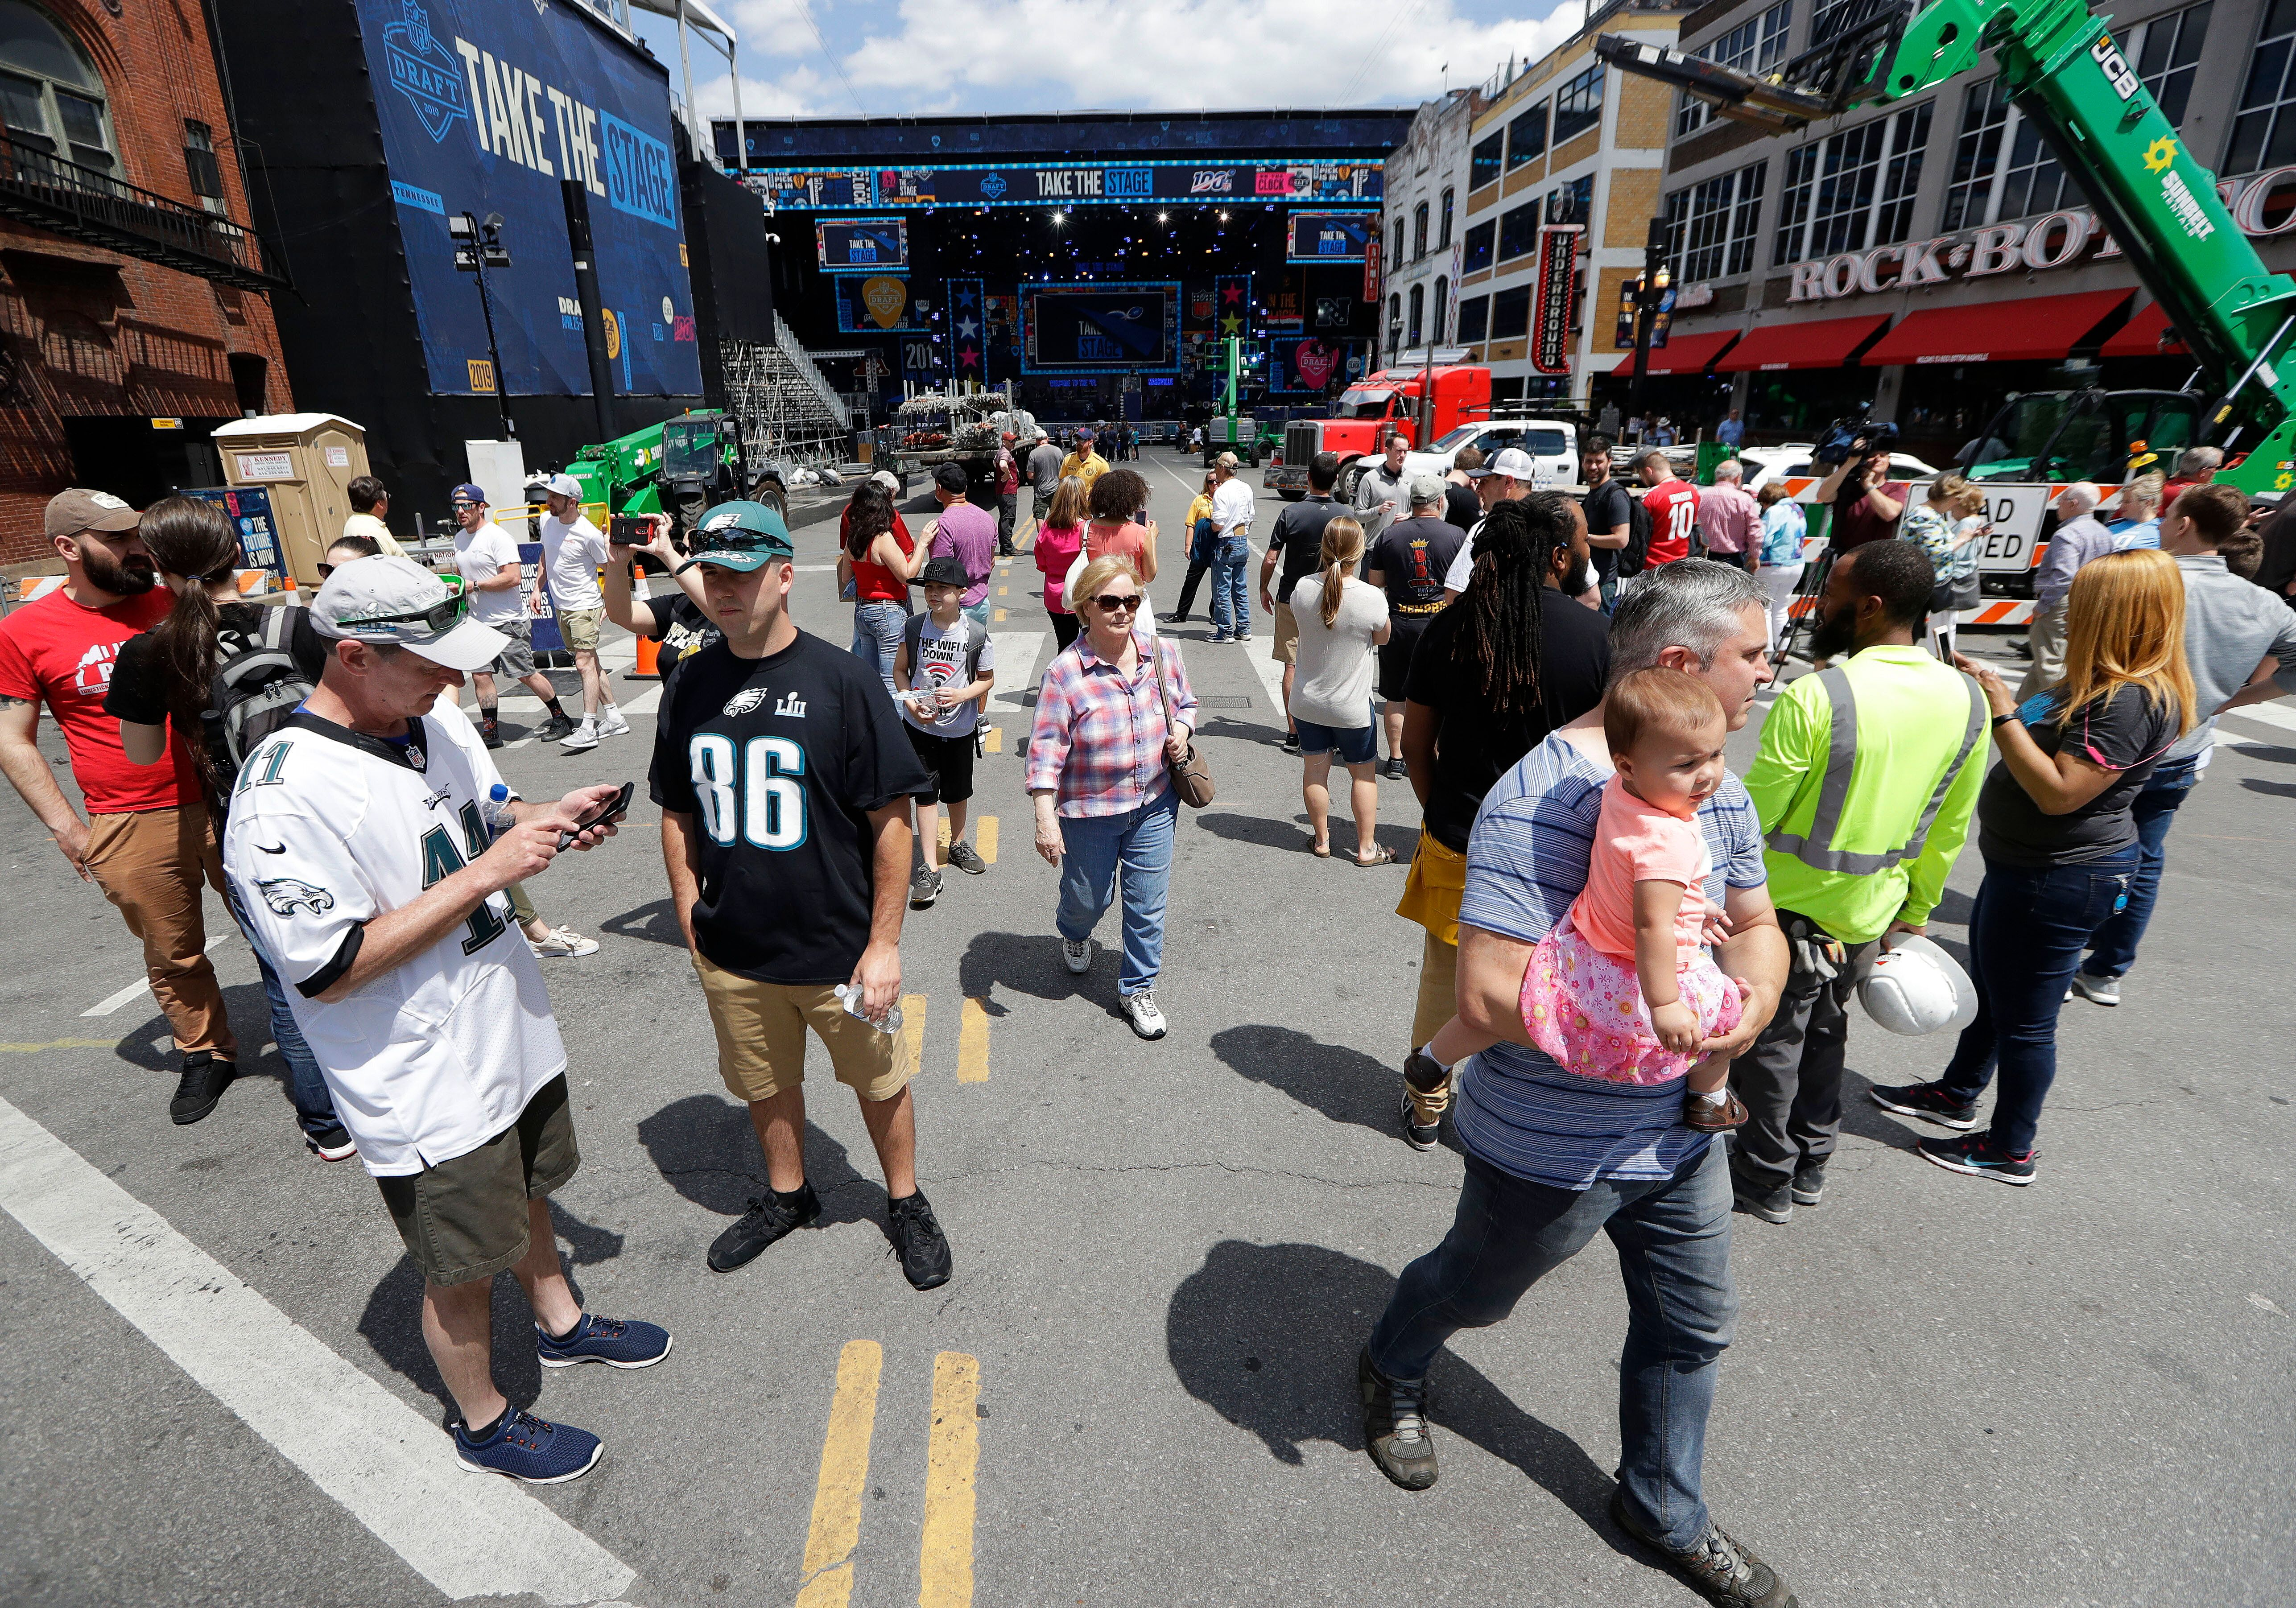 Onlookers watch the progress of the NFL stage being built ahead of the first-round NFL Draft in Nashville, Tenn. (AP Photo)